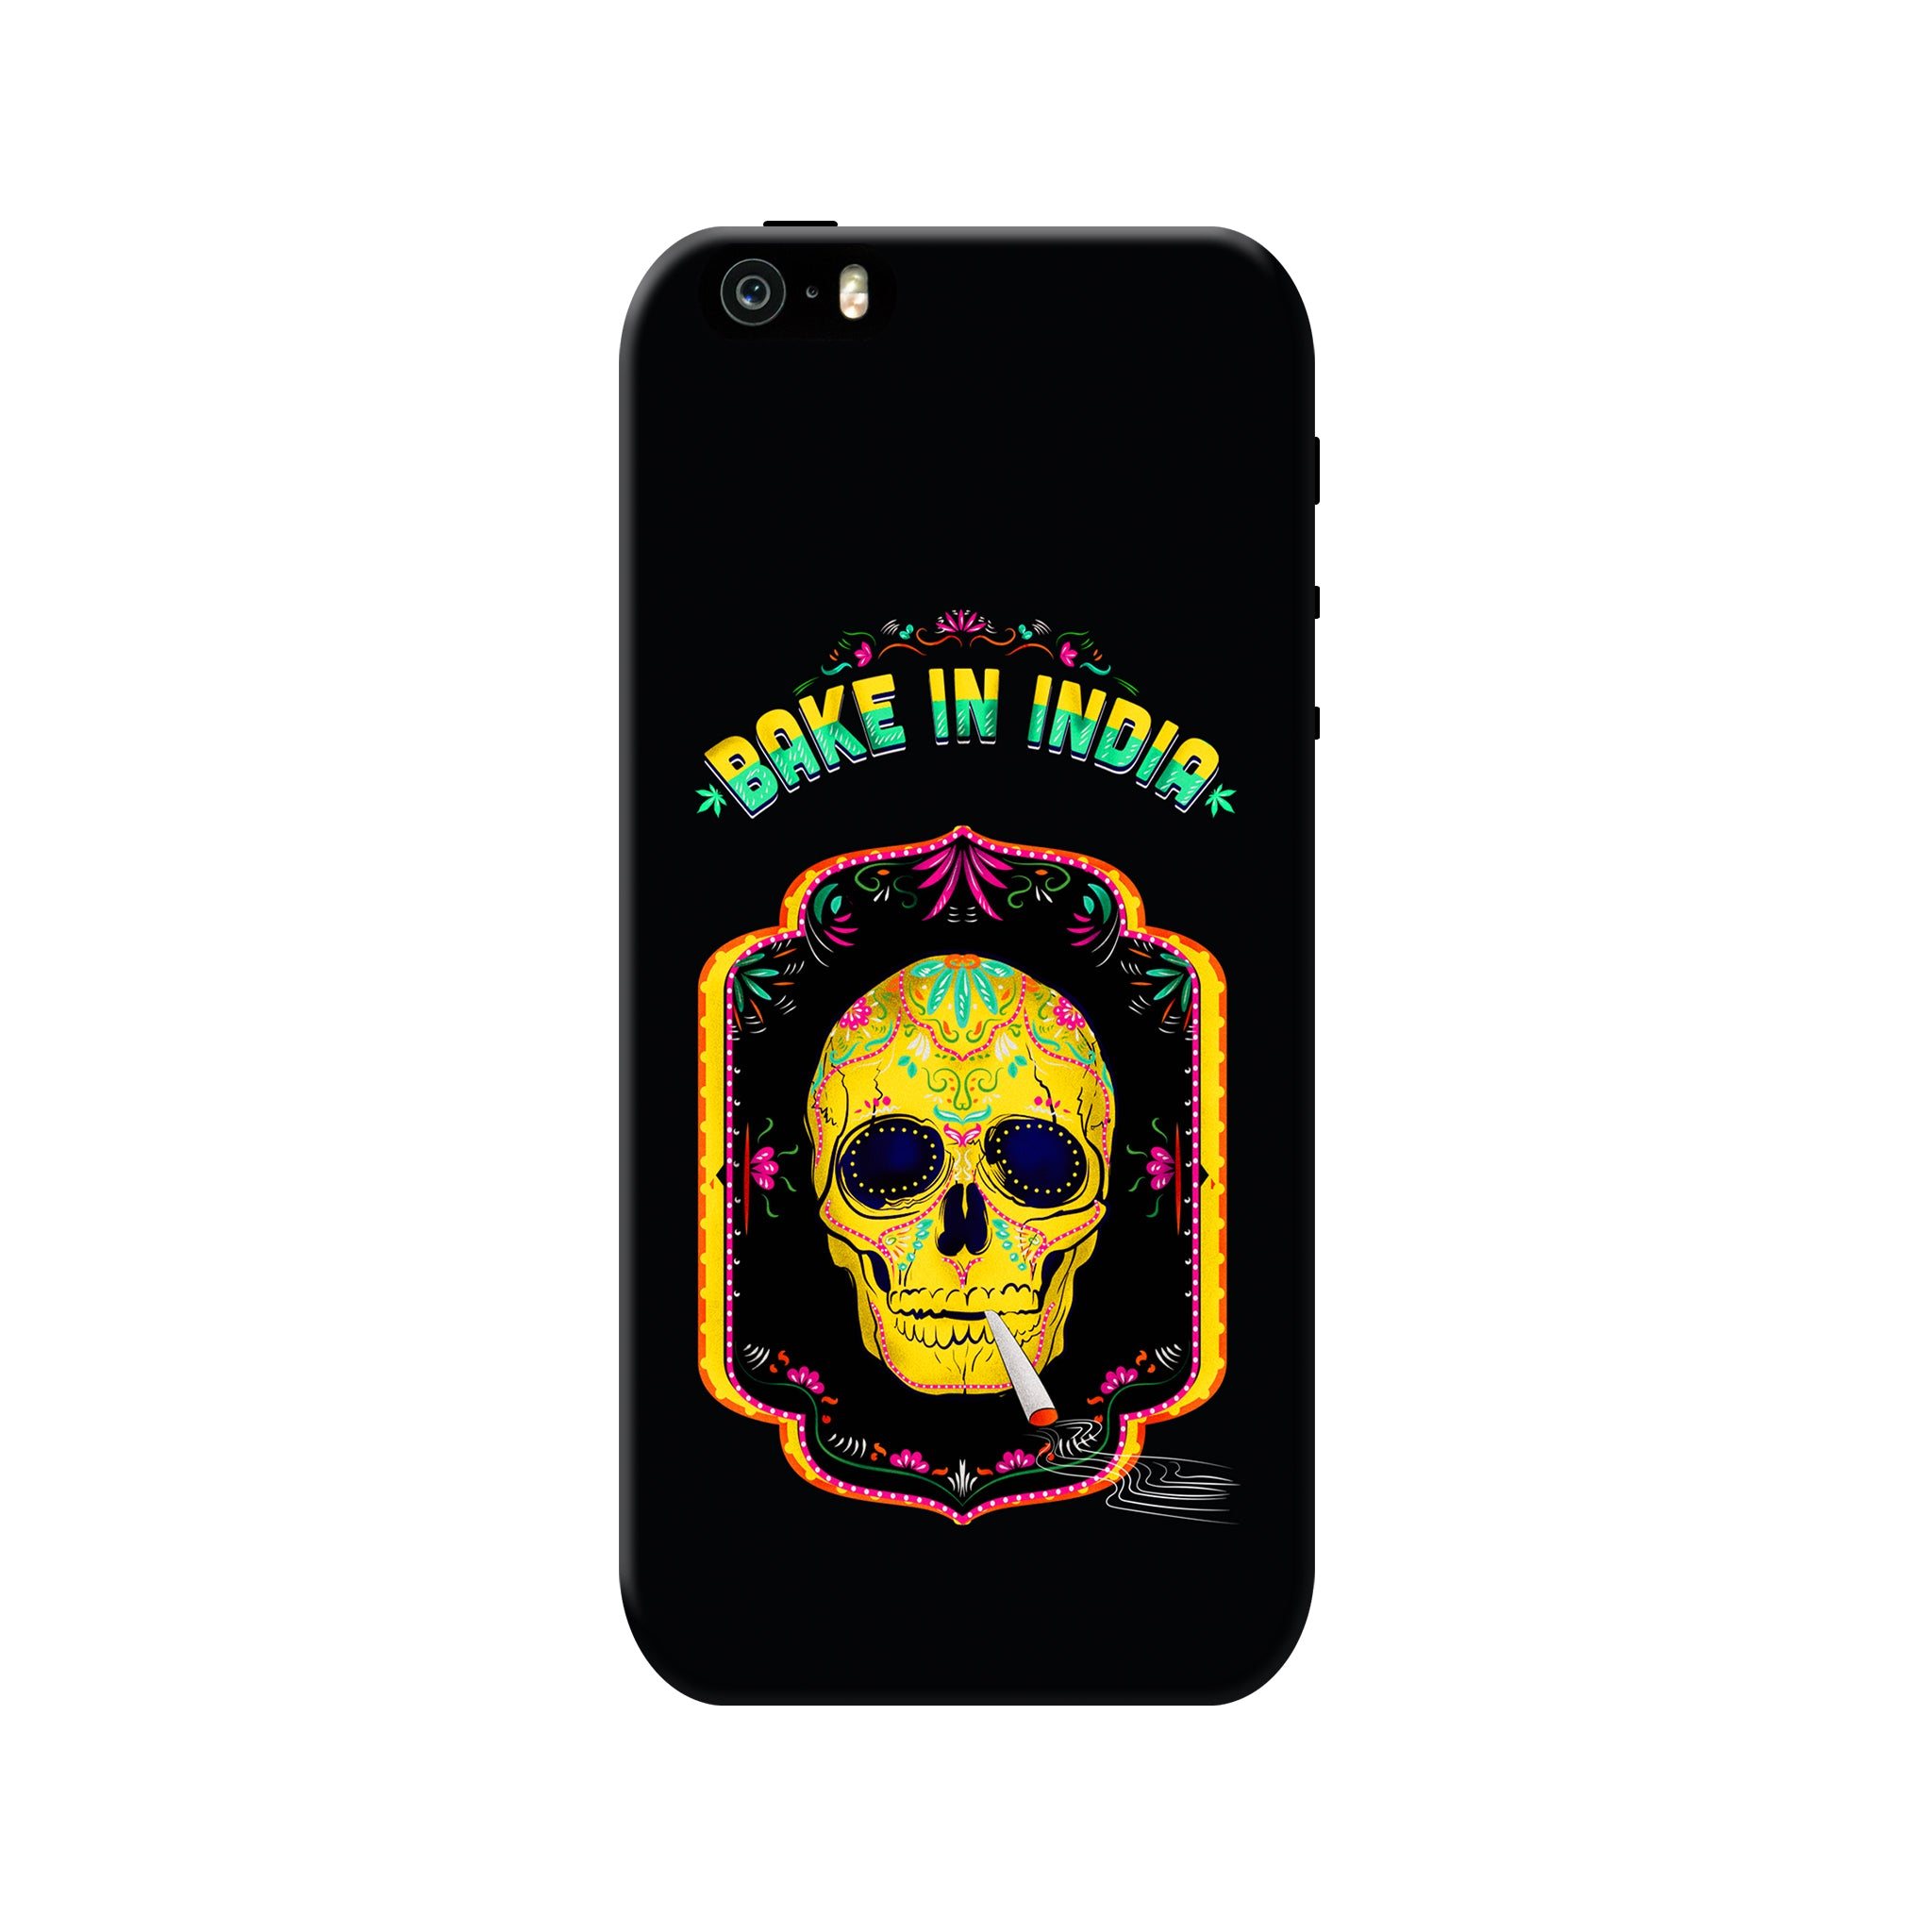 Bake In India Iphone 5/5s Cover